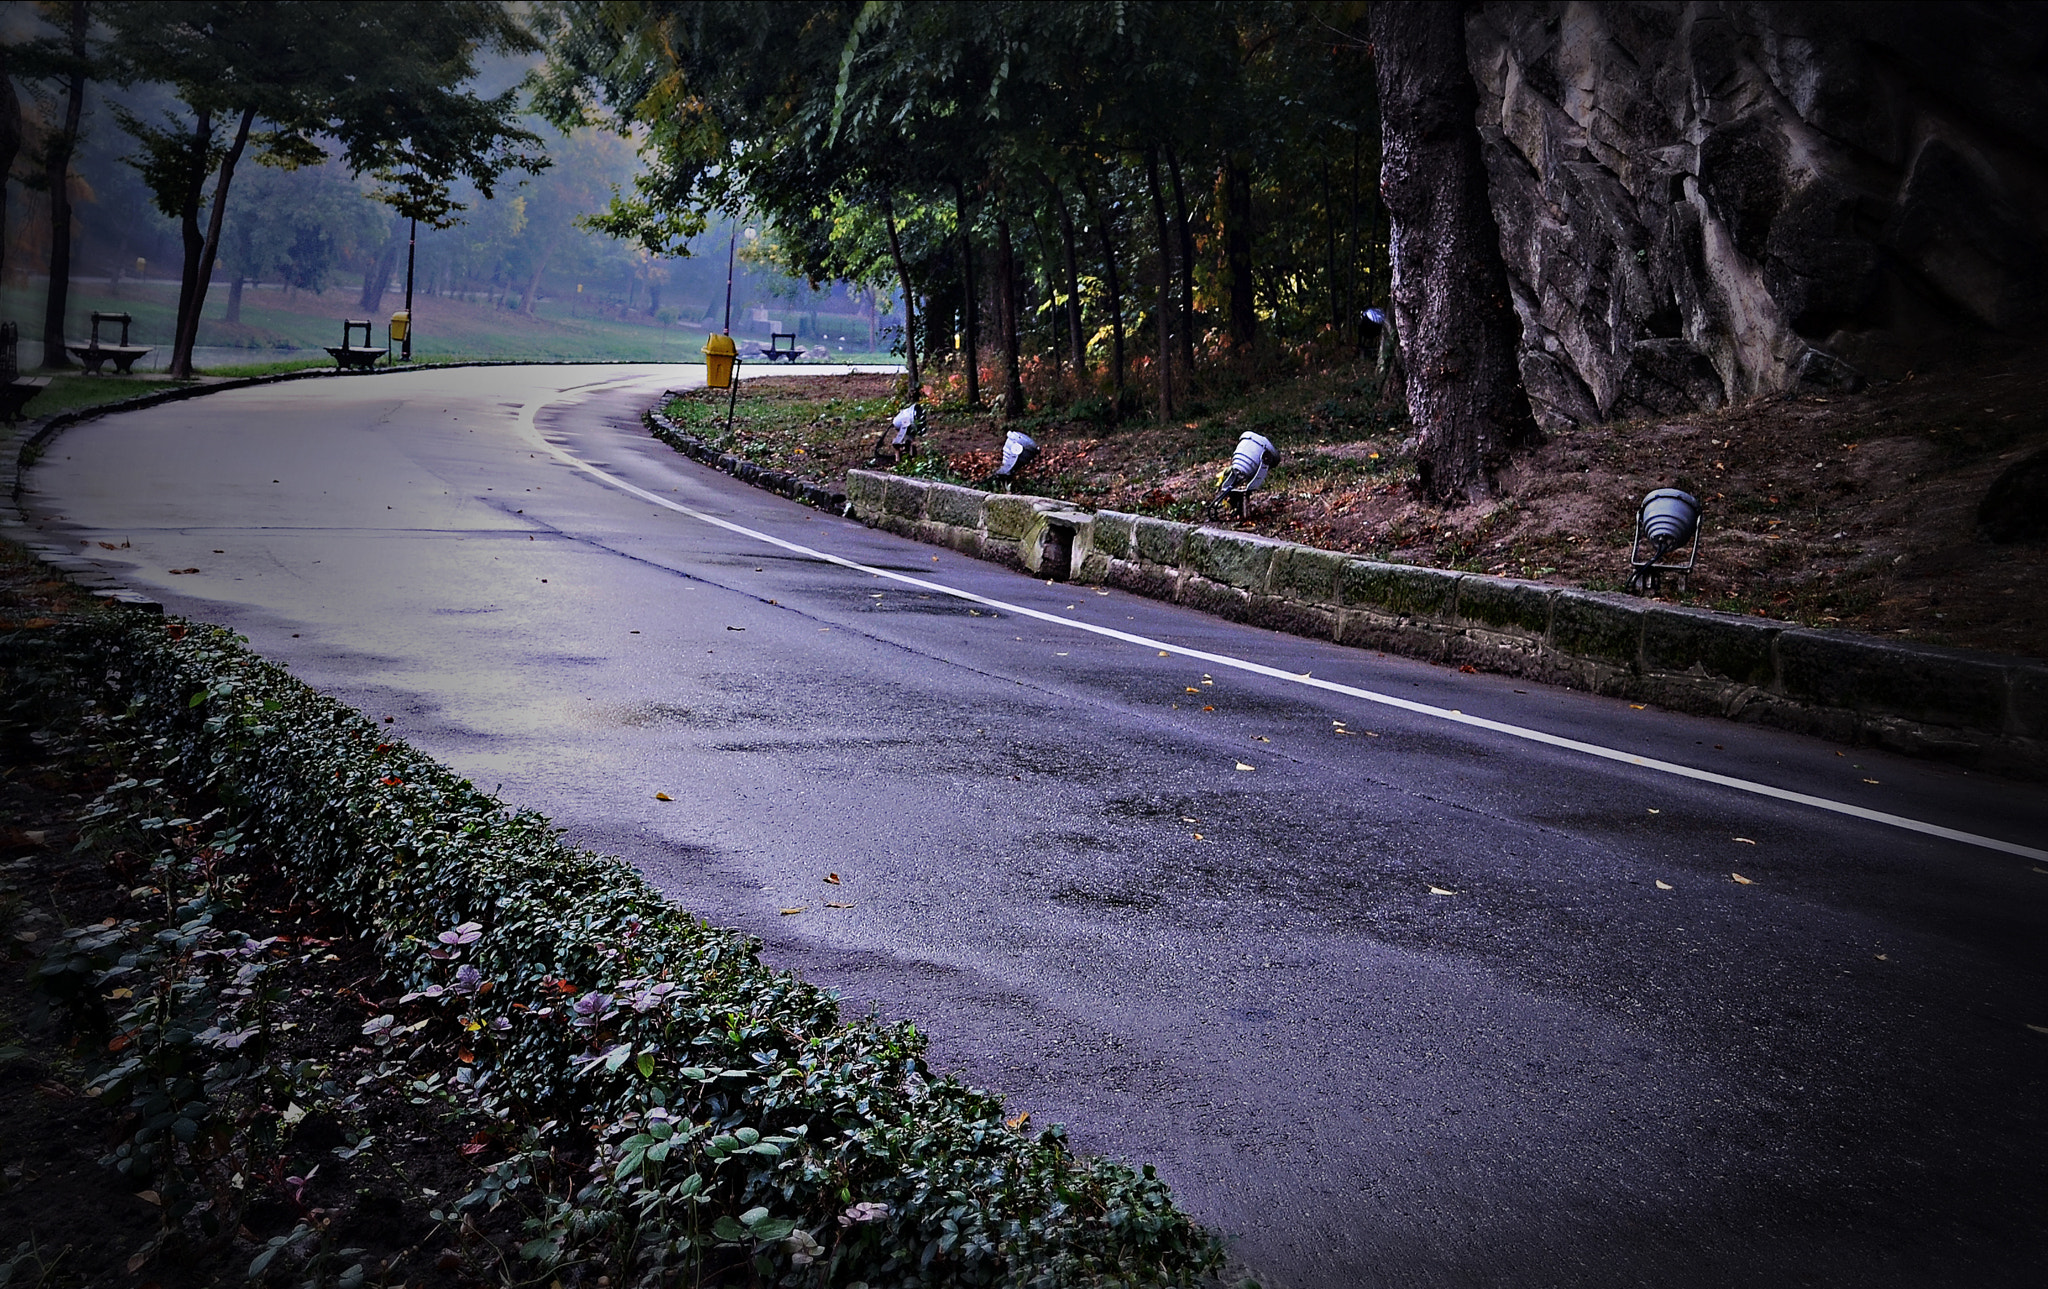 Photograph Road by Toni Oprea on 500px